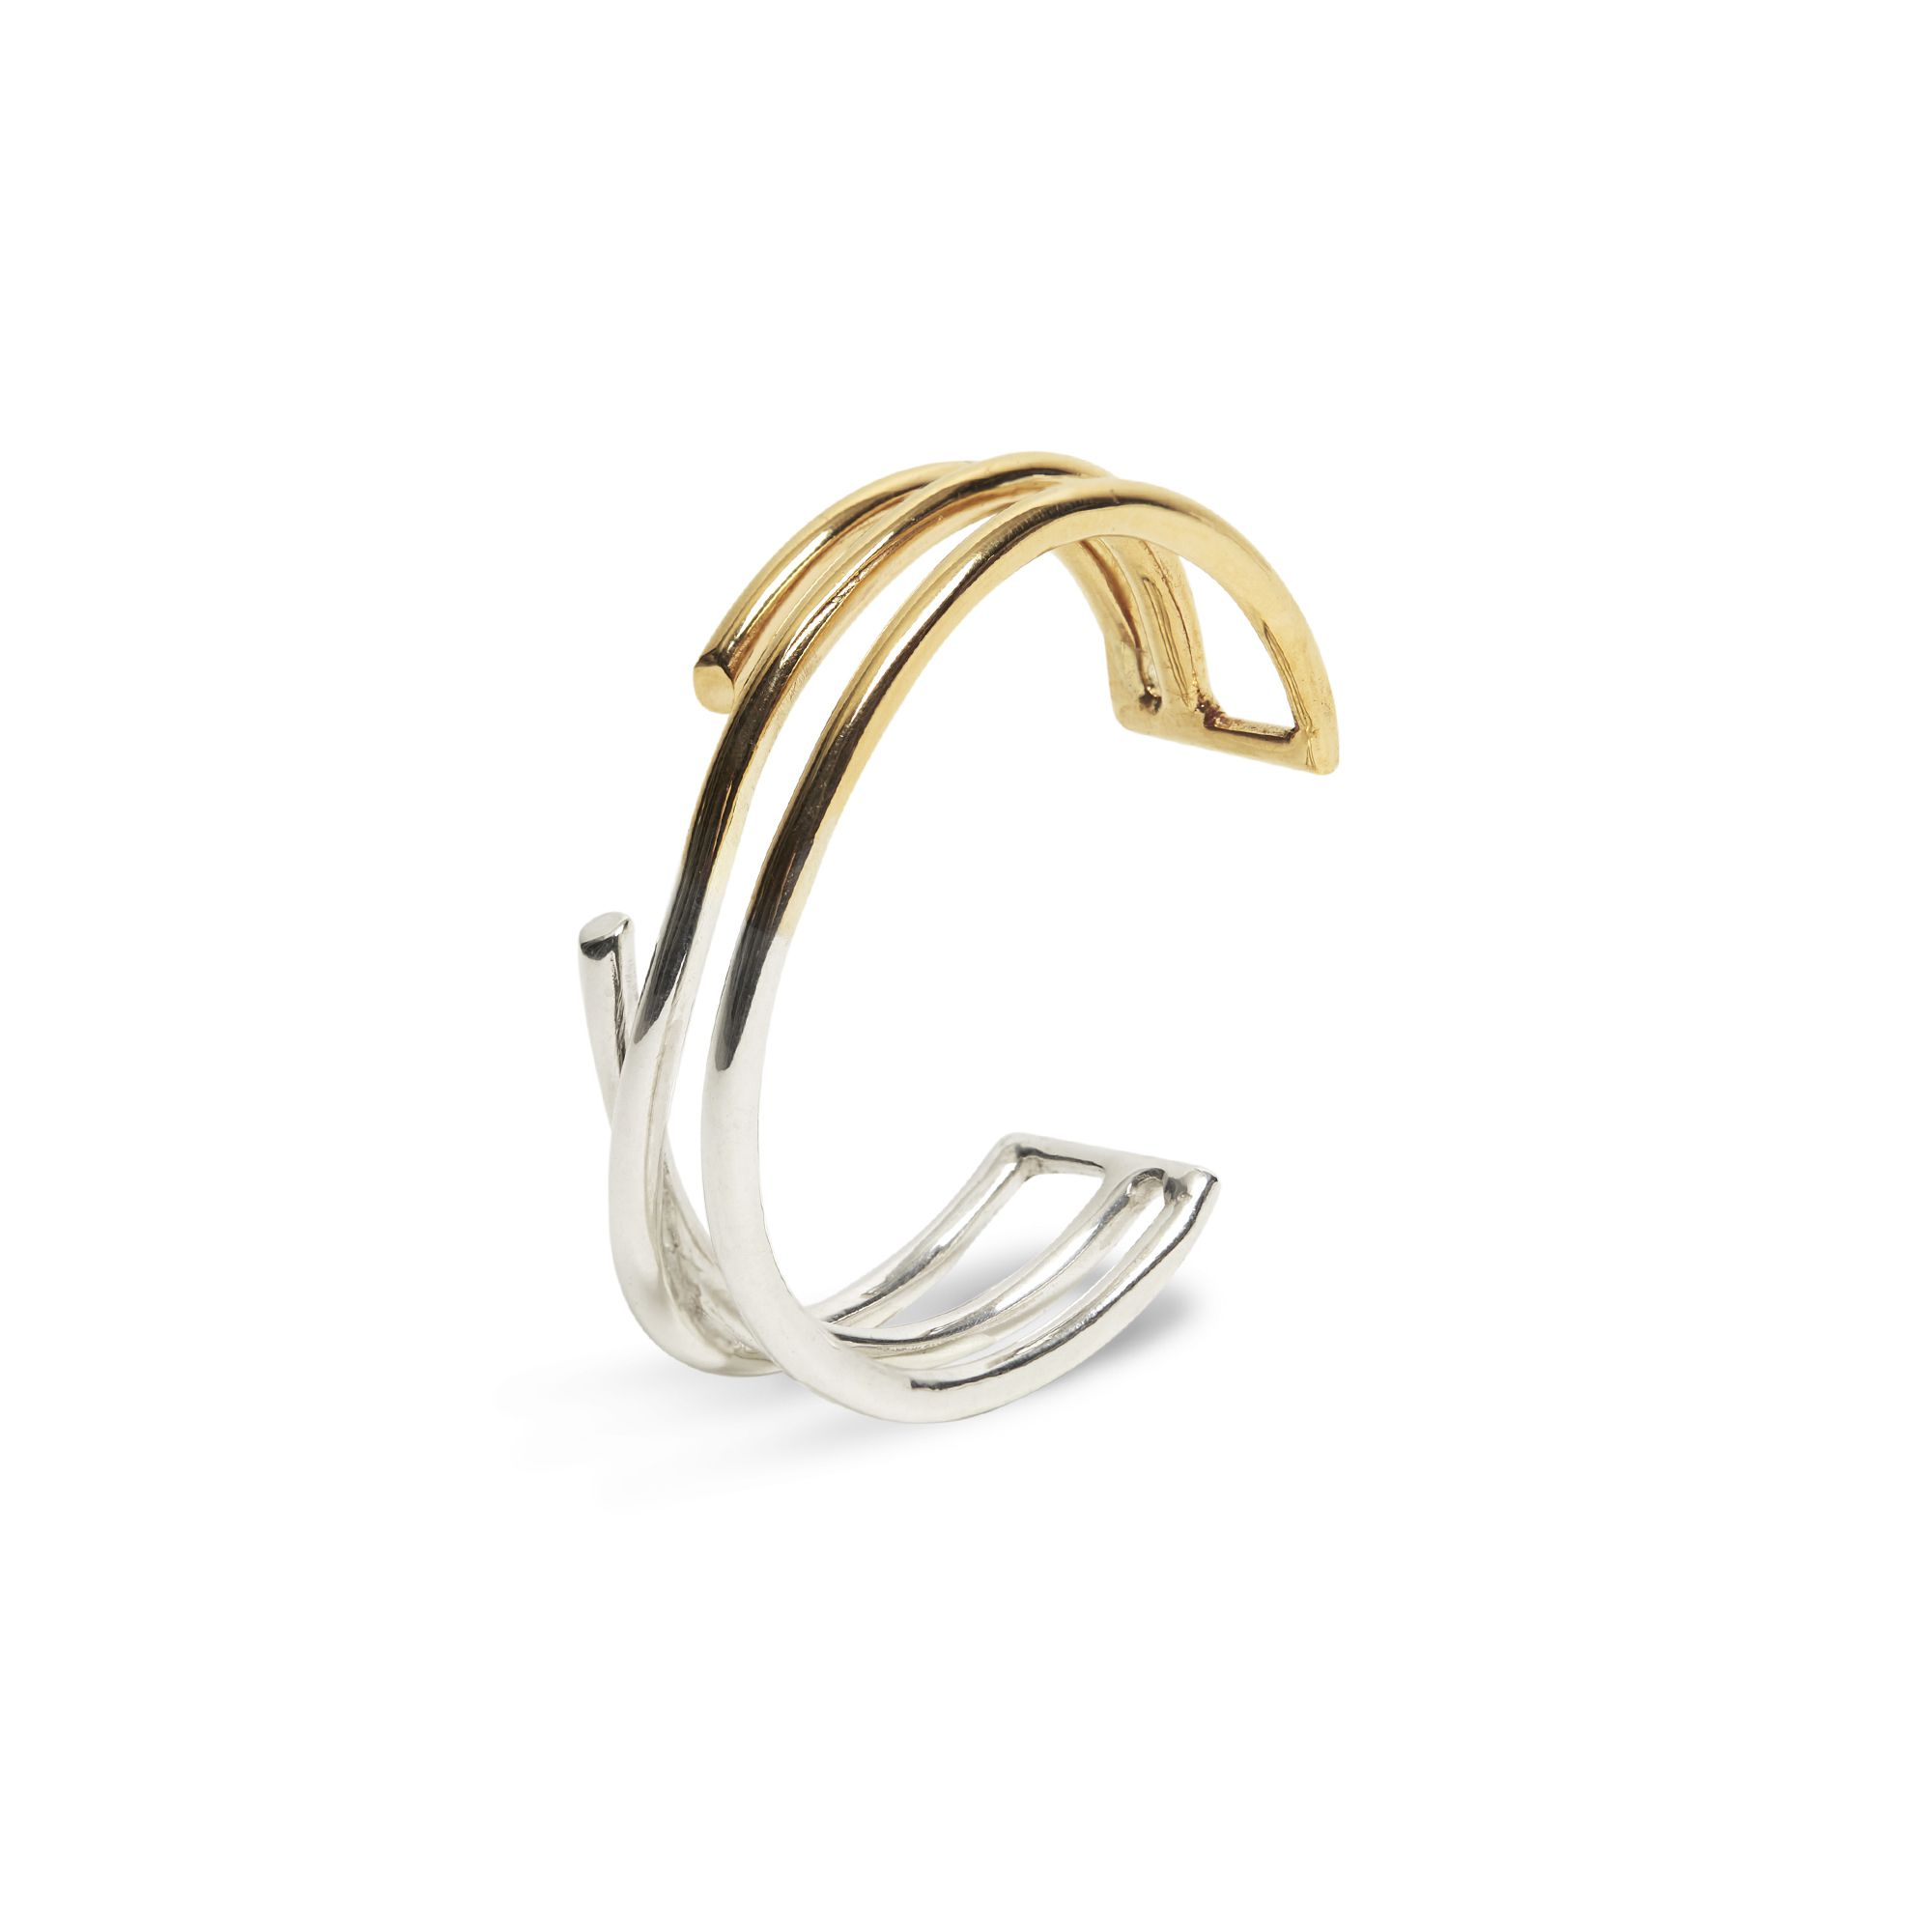 3 element 'Neon' bracelet Bracelet in silver and bronze